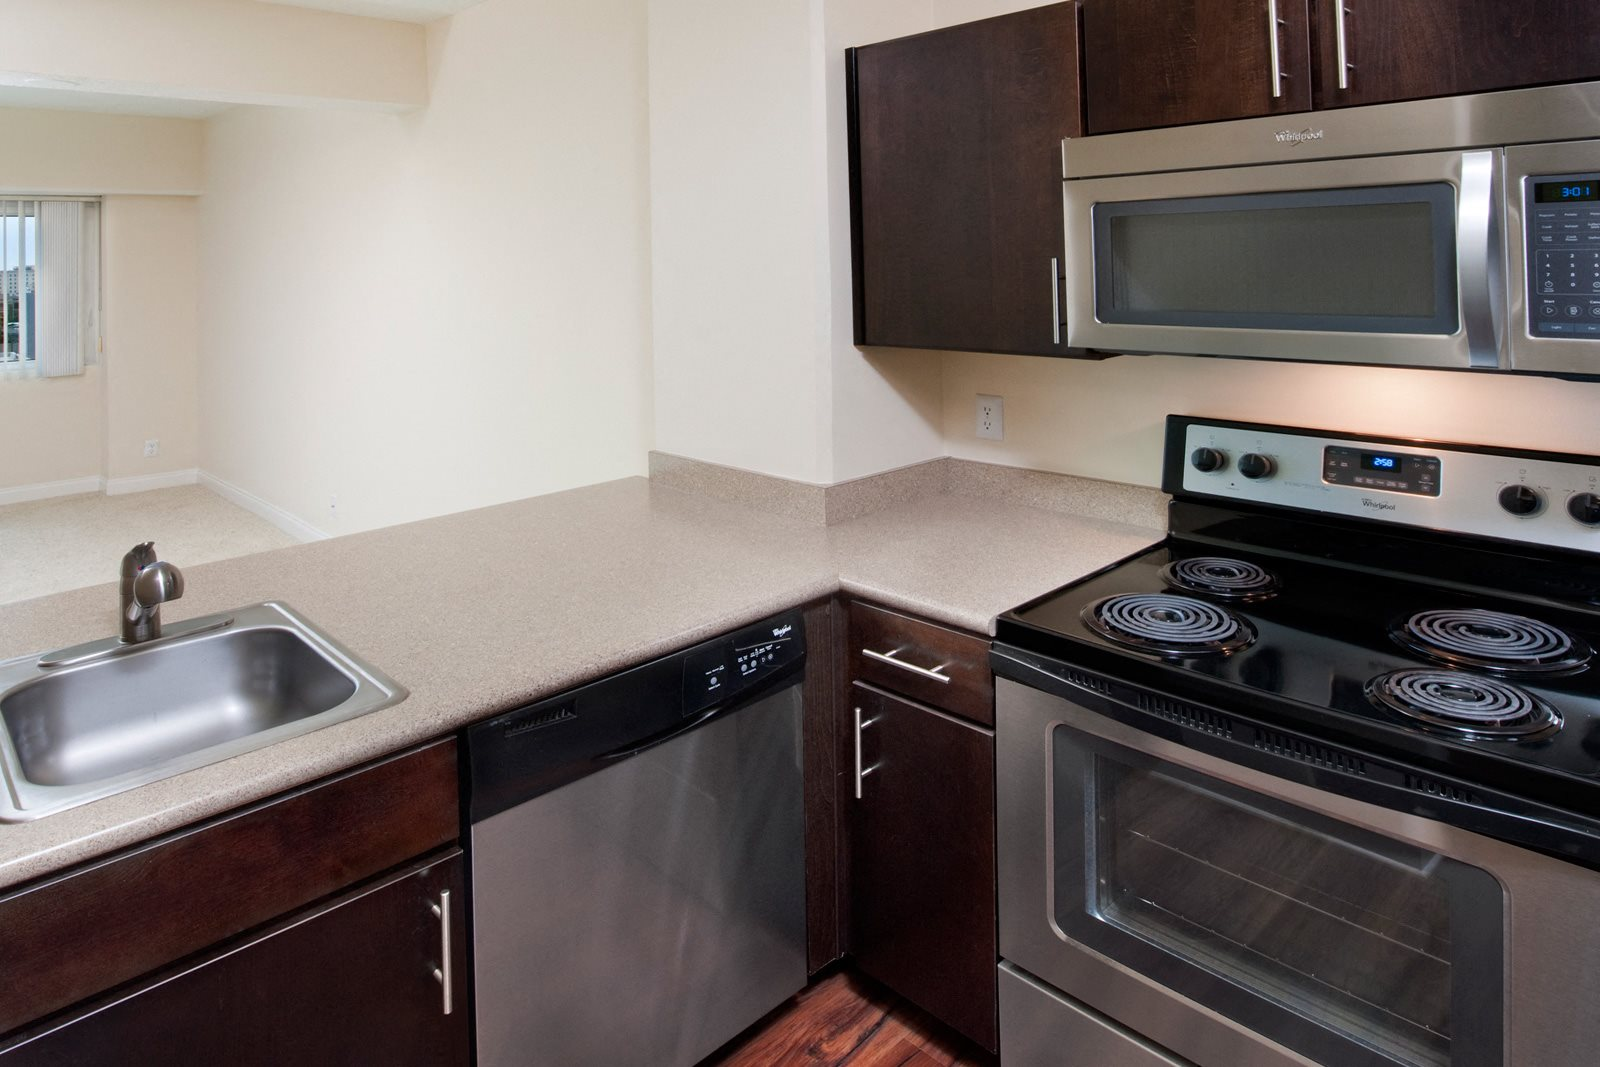 Upgraded Kitchen with Stainless Steel Appliances at Renaissance Tower, 90015, CA